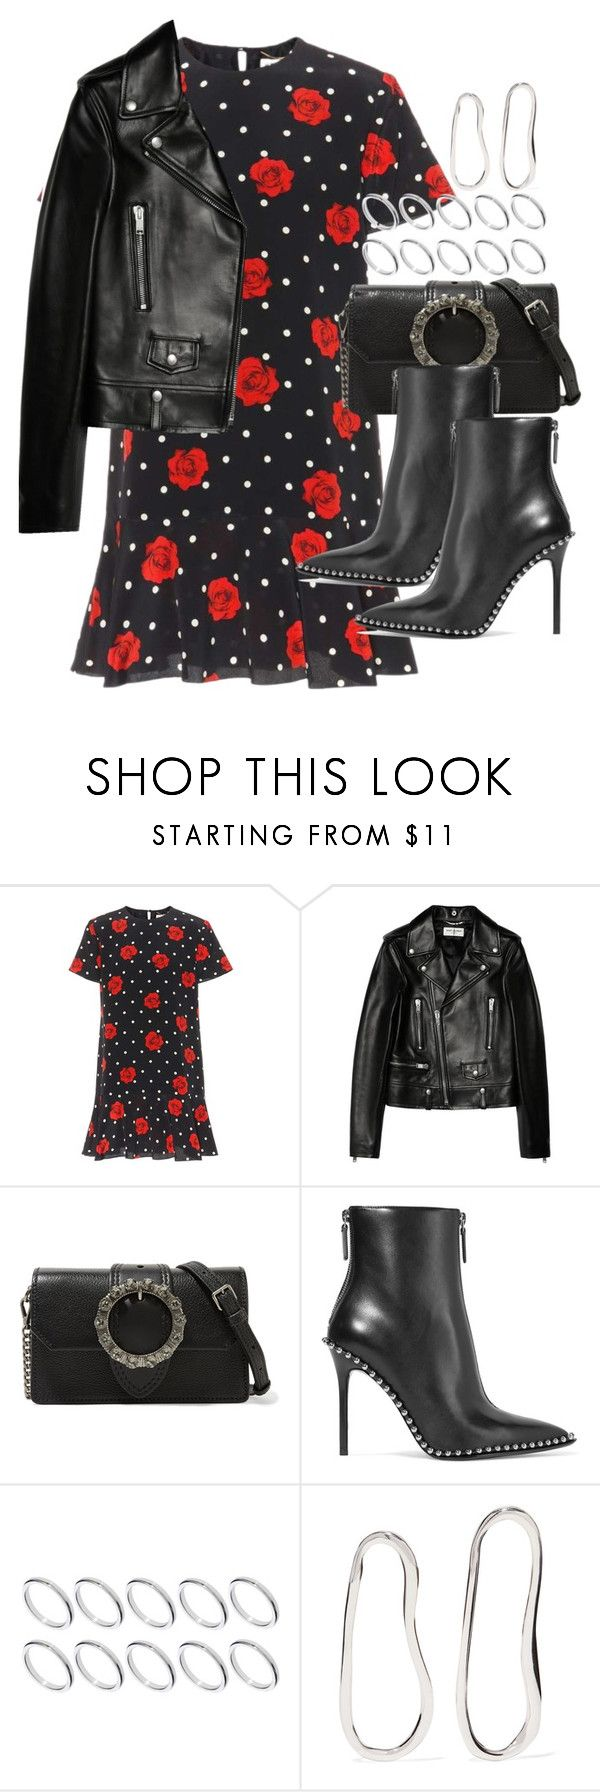 """""""Sin título #4586"""" by hellomissapple ❤ liked on Polyvore featuring Yves Saint Laurent, Miu Miu, Alexander Wang, ASOS and Sophie Buhai"""